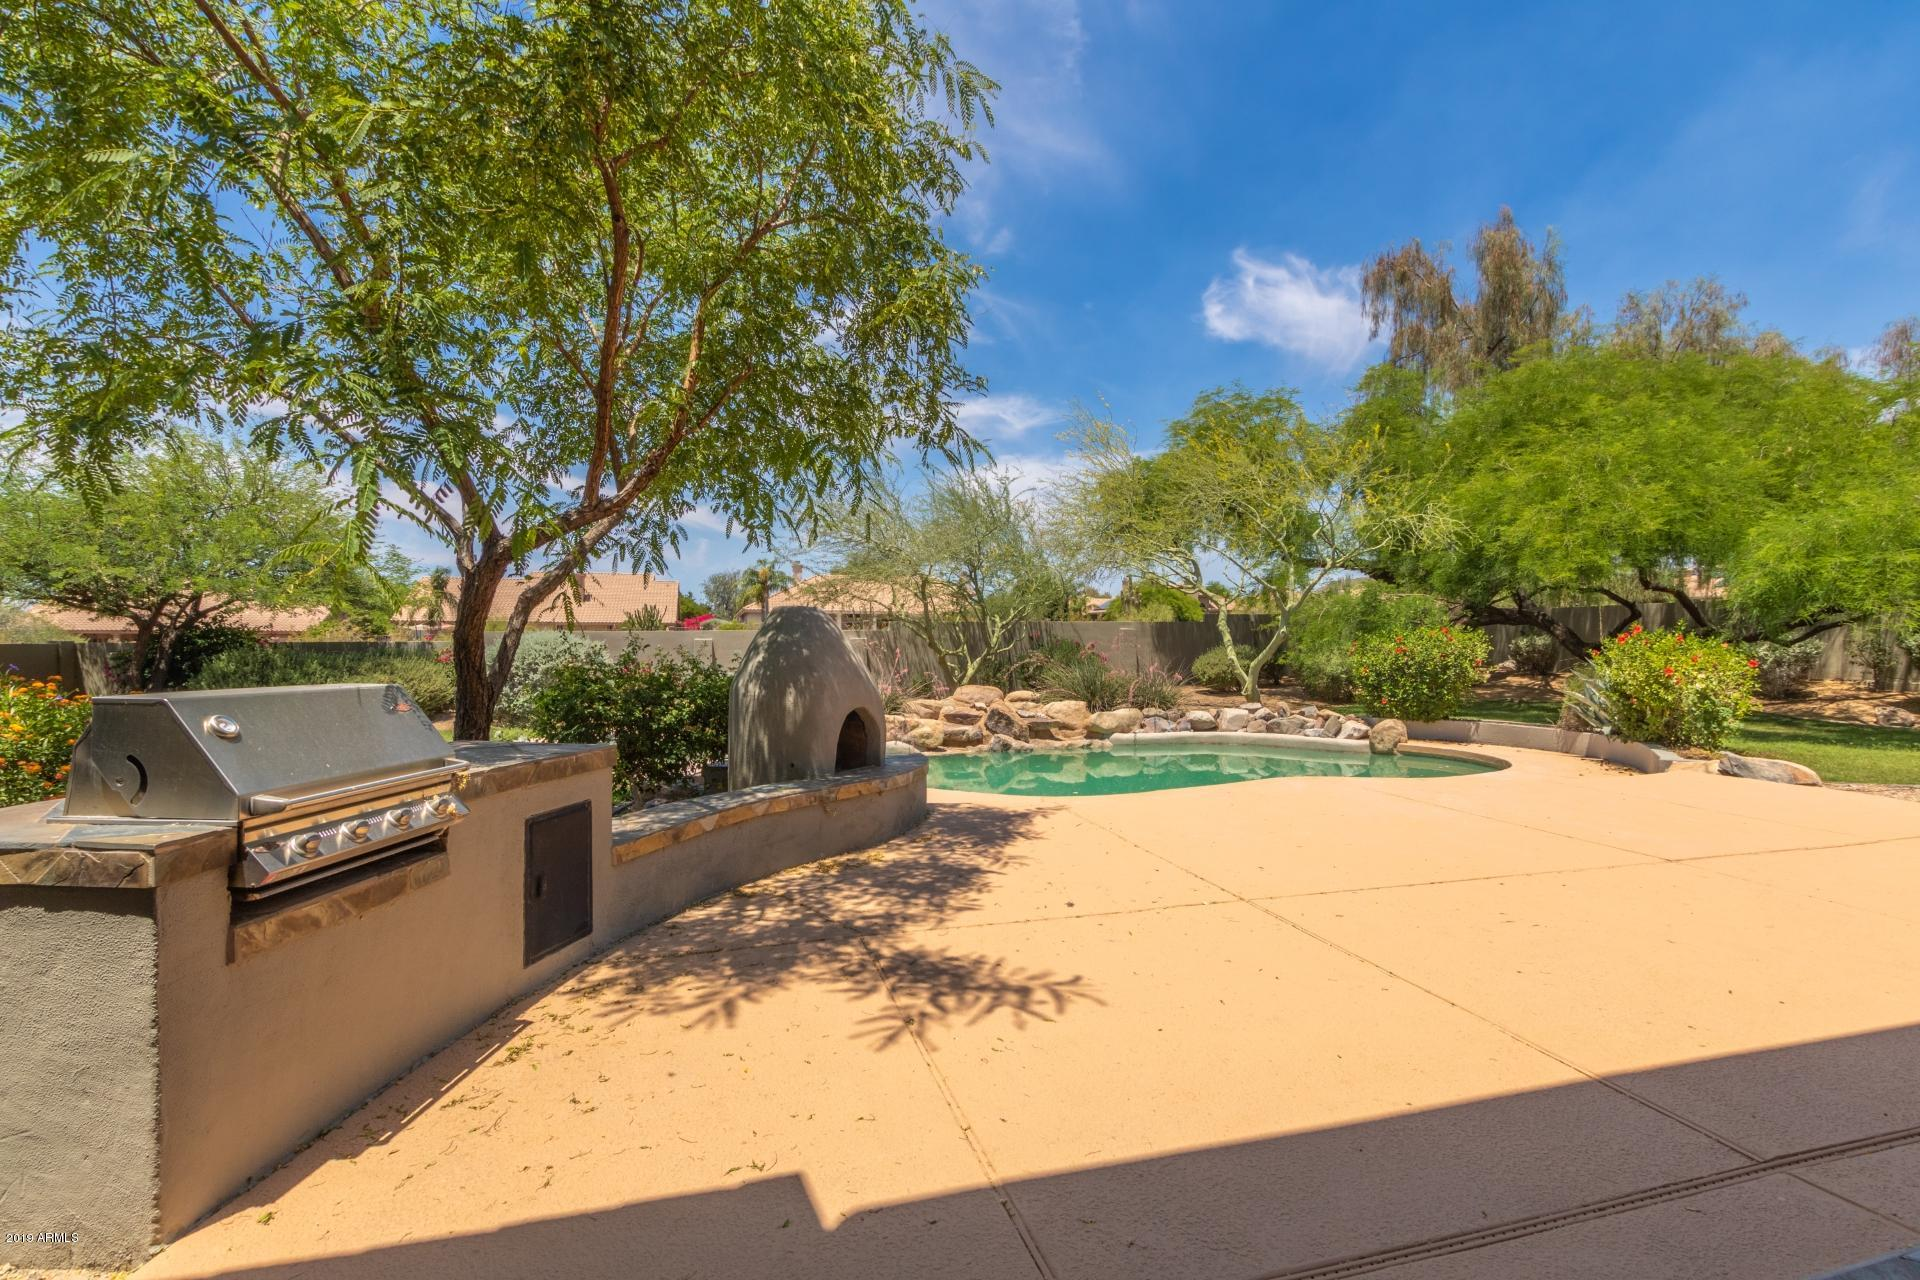 MLS 5940782 11546 N 128TH Place, Scottsdale, AZ 85259 Scottsdale AZ REO Bank Owned Foreclosure